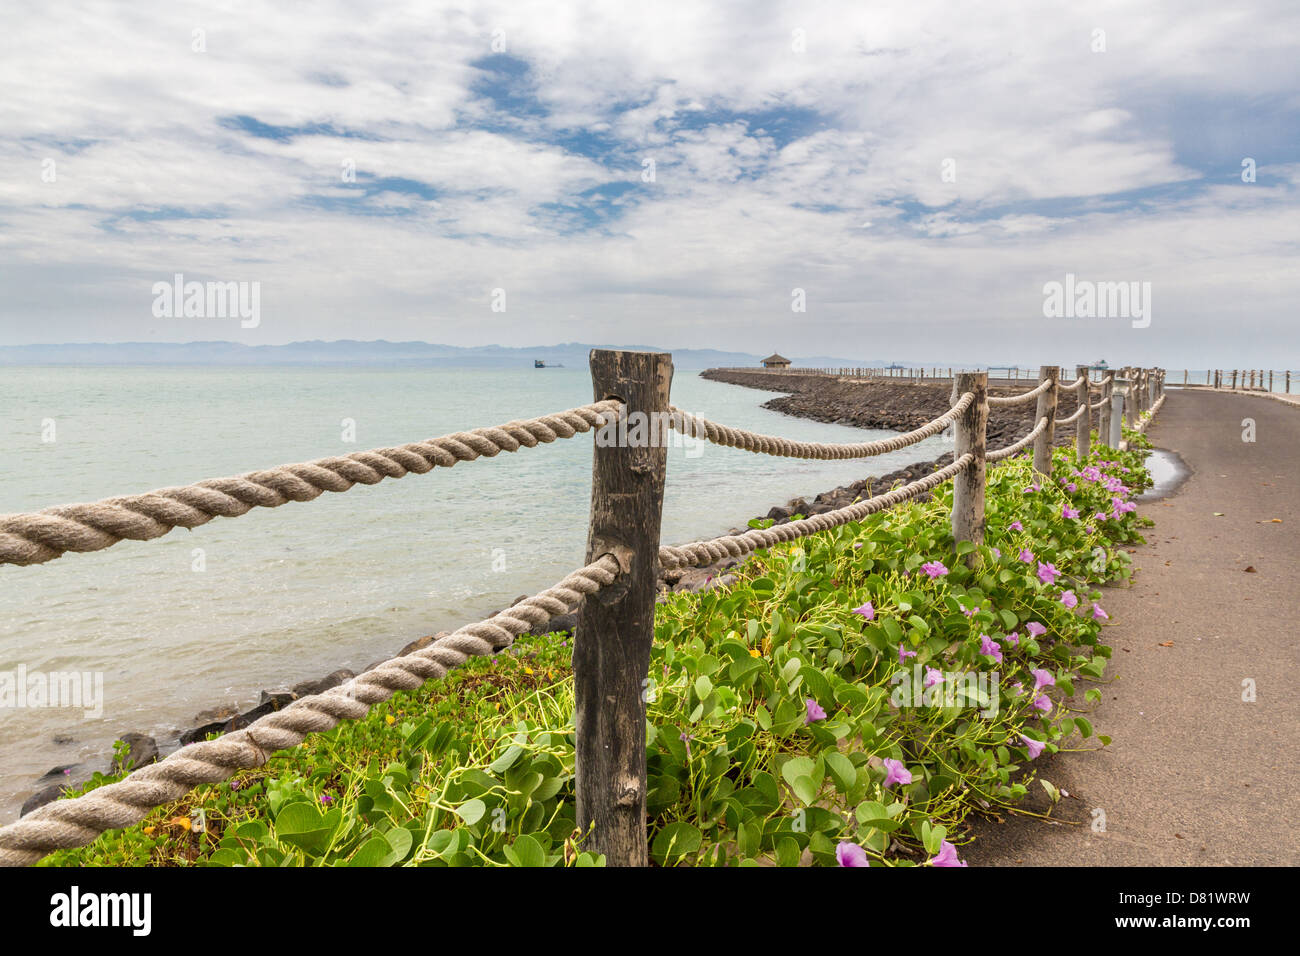 Plants and flowers growing on the shores of the Red sea near Djibouti port - Stock Image